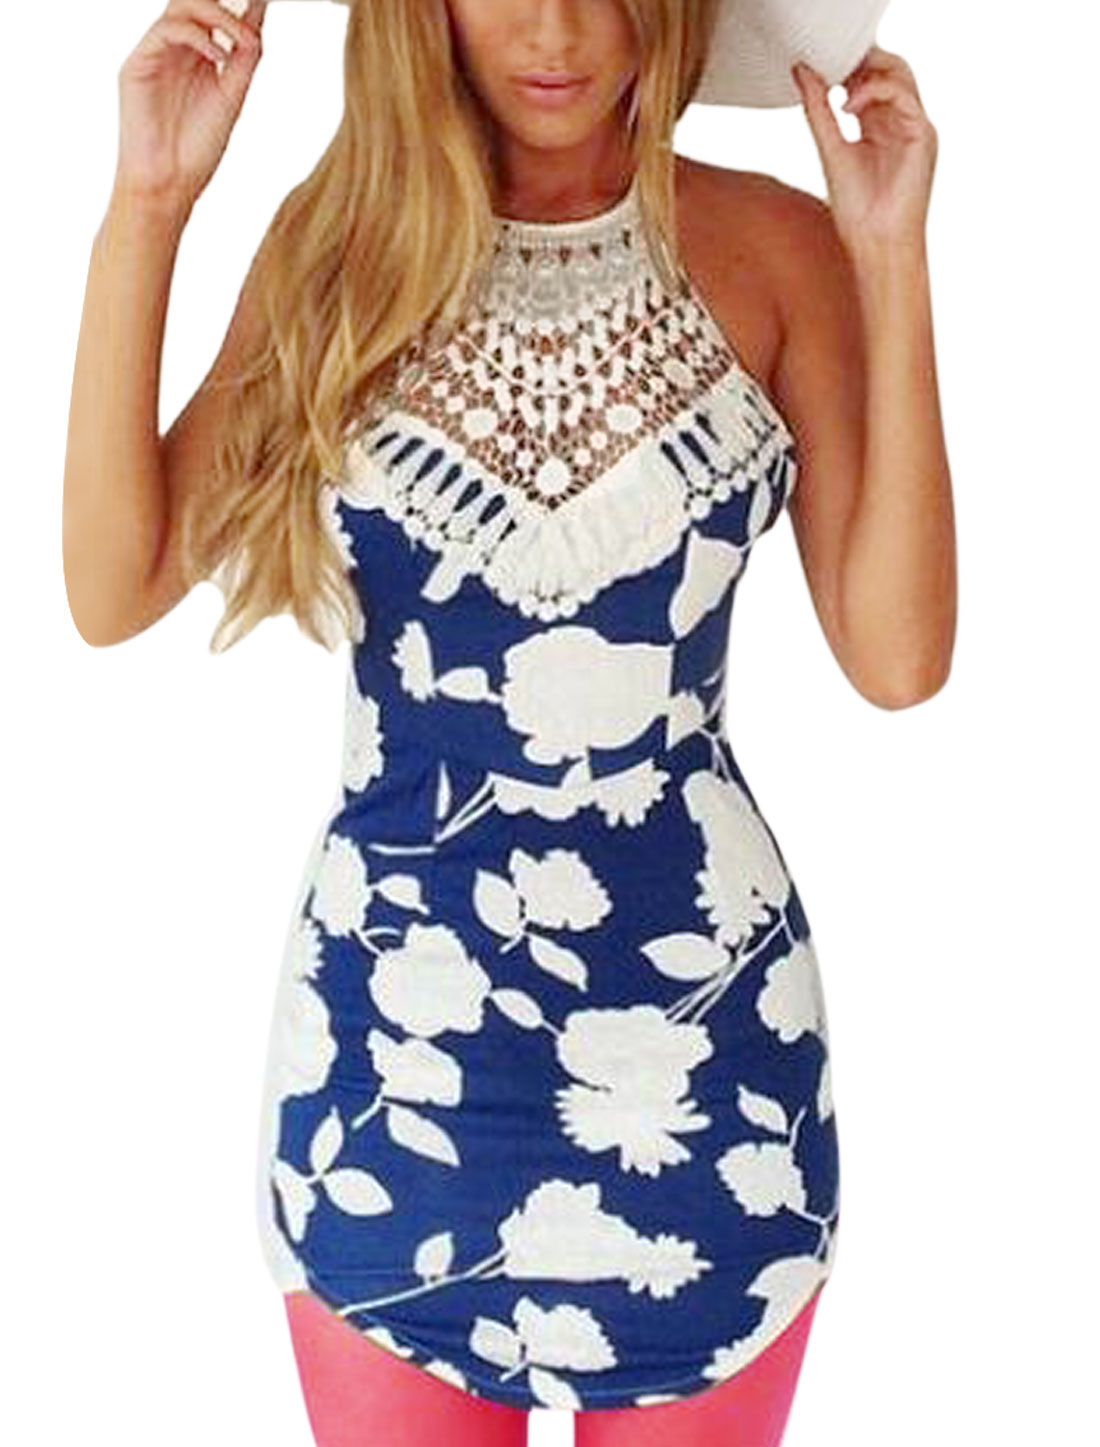 Woman Floral Prints Crochet Design Halter Neck Round Hem Tunic Top Navy Blue White L